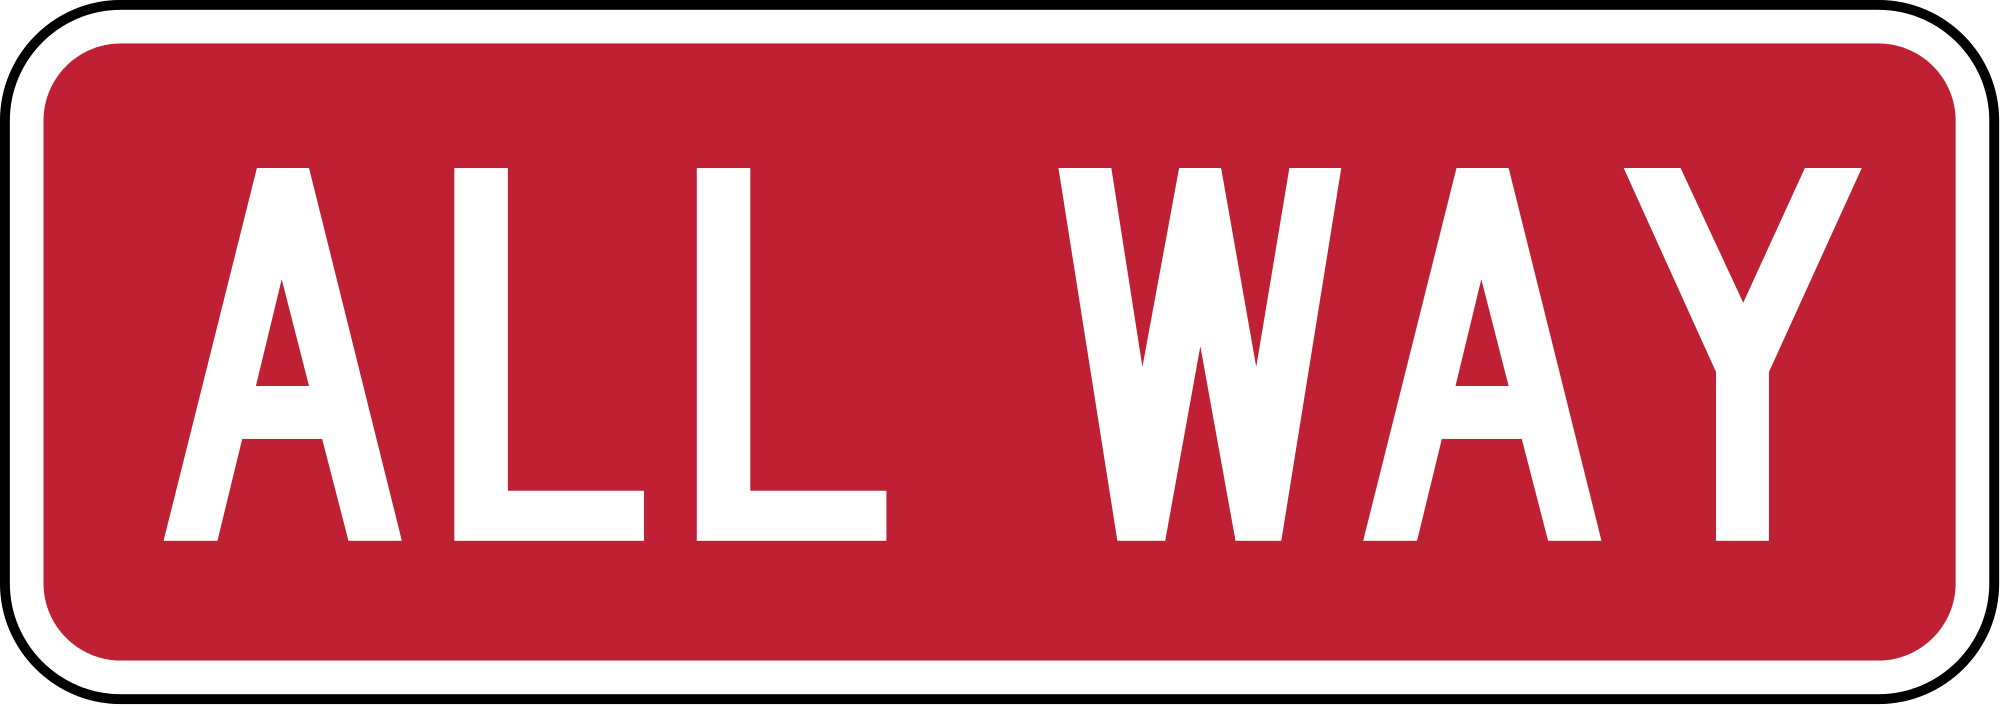 R1-4 All Way Regulatory Sign